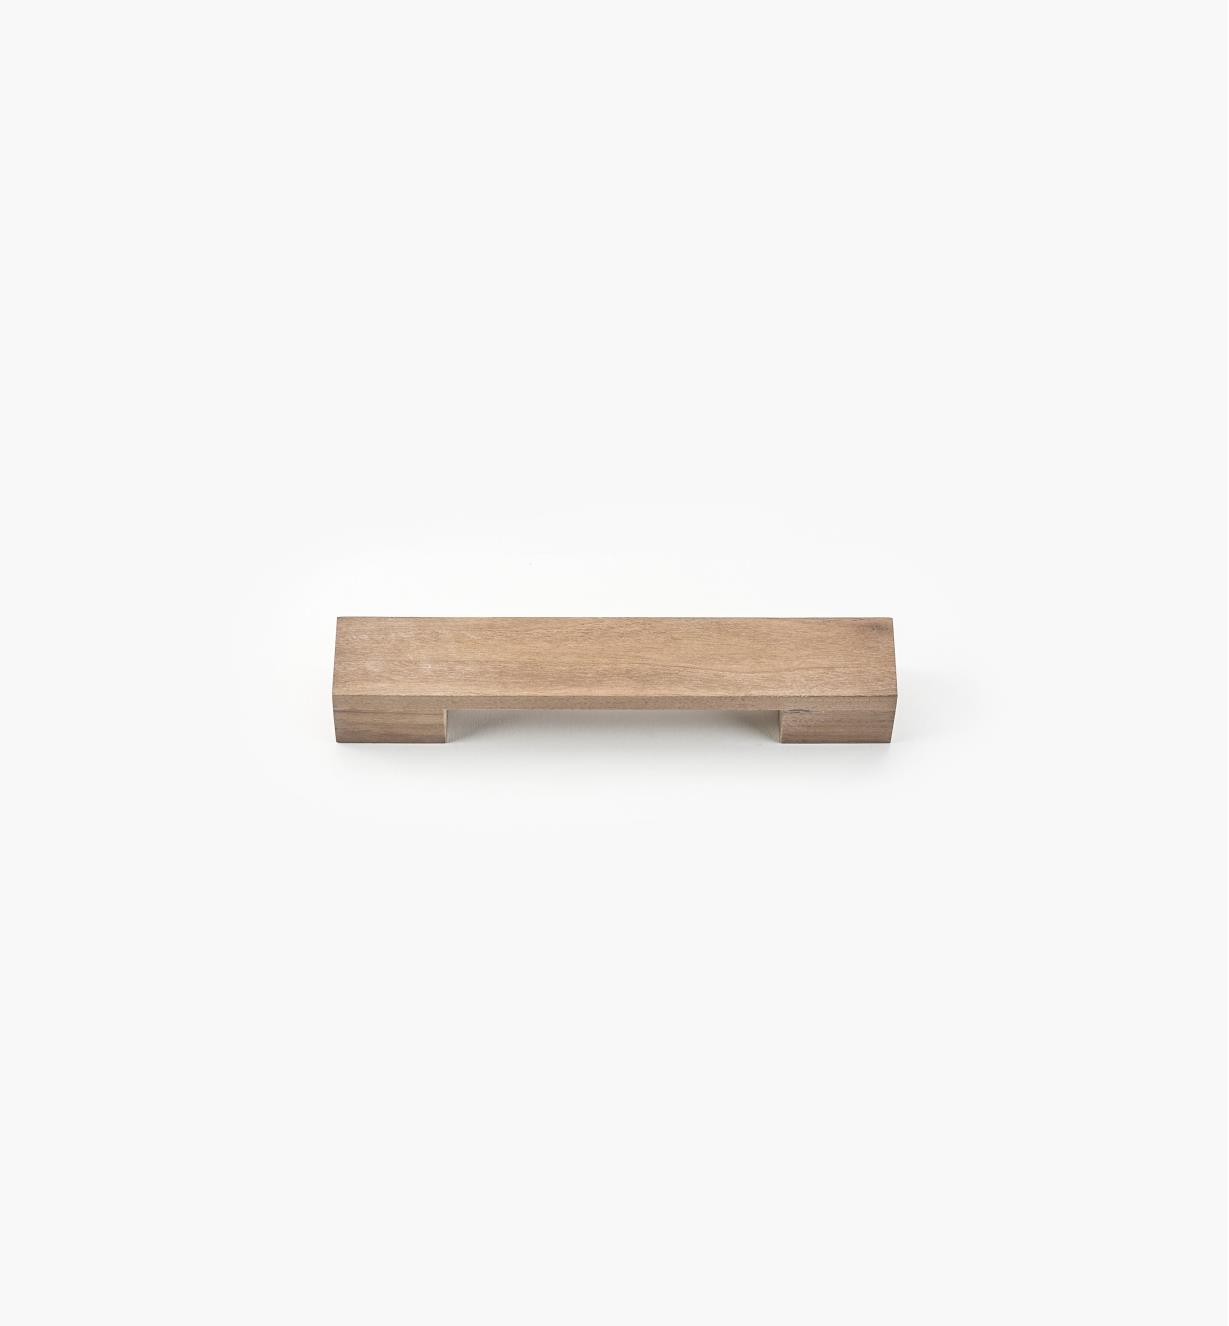 02G2005 - 200mm (160mm) Brick Danish Walnut Handle